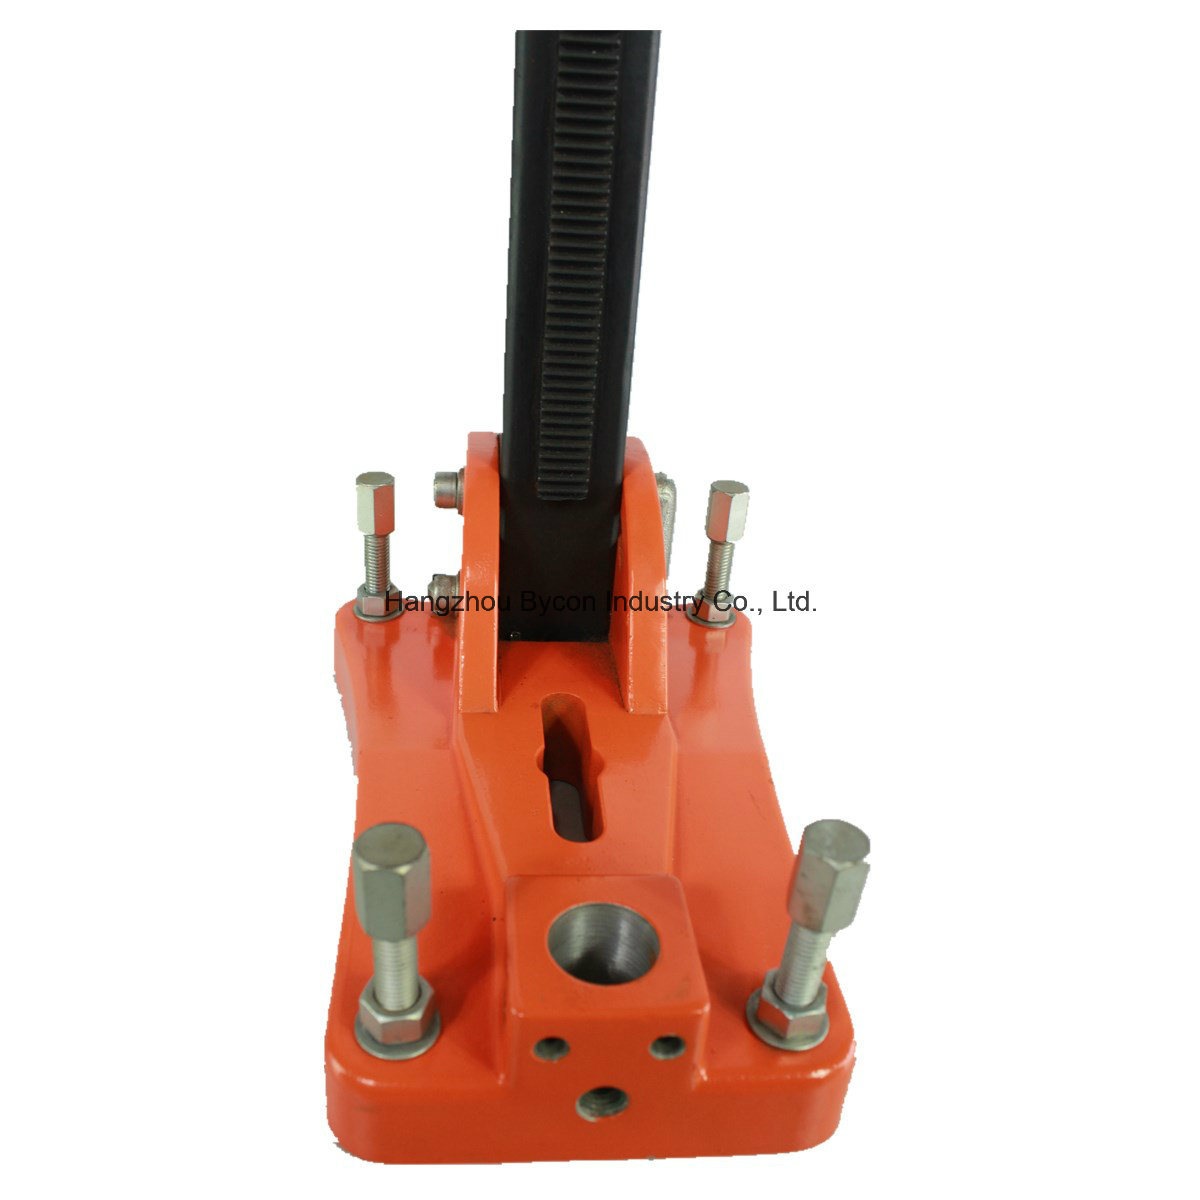 UVD-160 162mm hand held stand drill machine heavy duty for electric drill